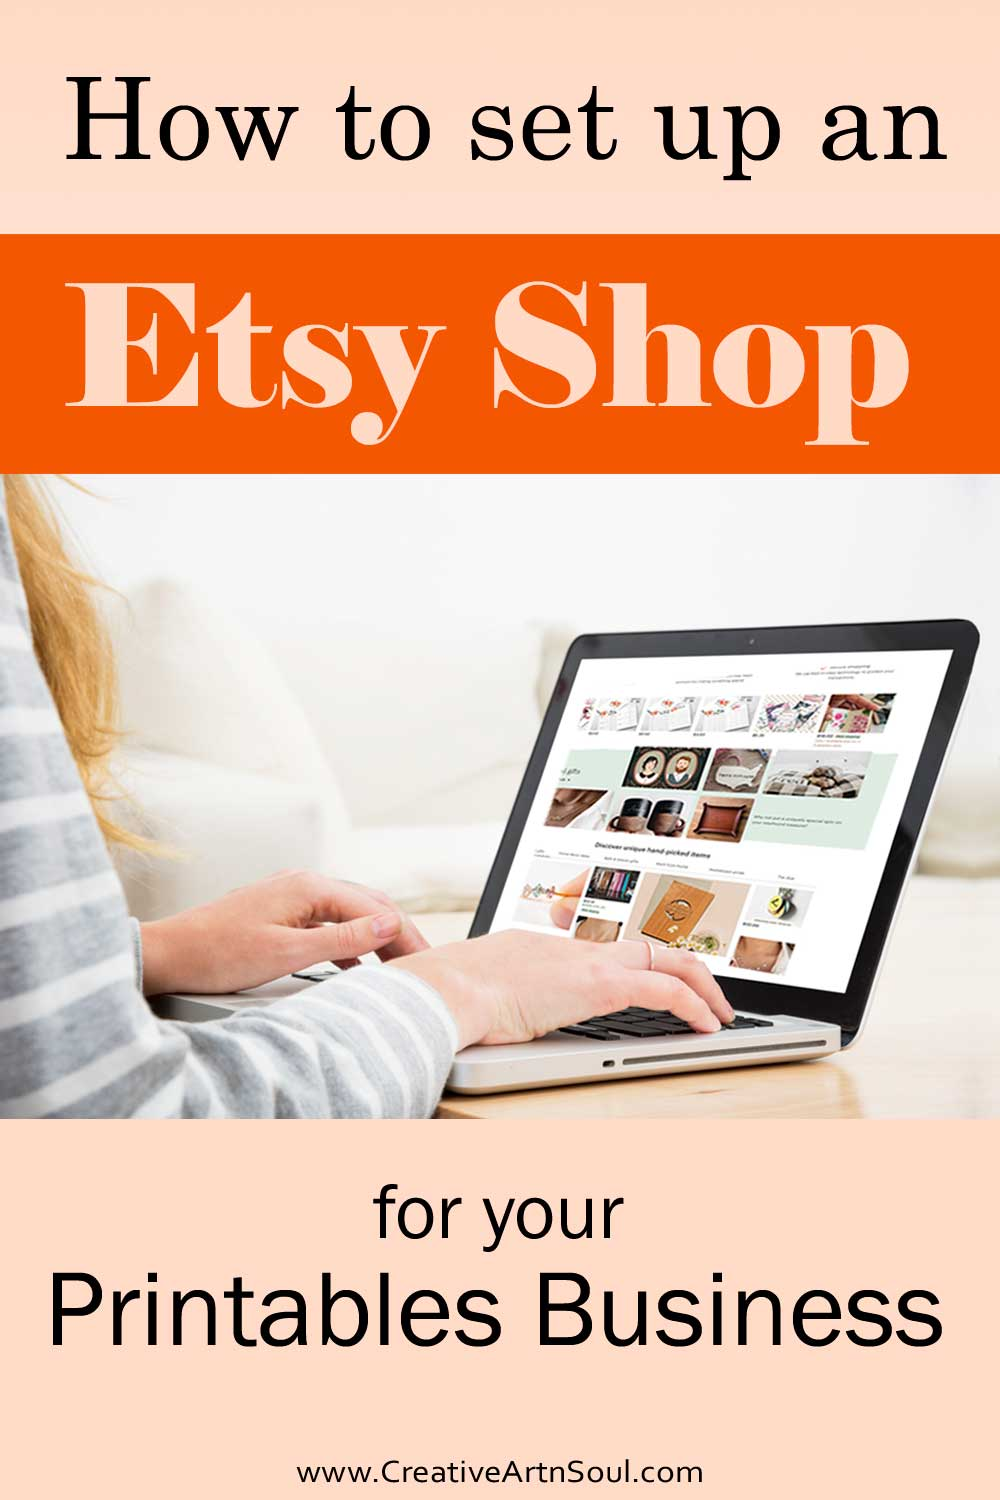 How to Set up An Etsy Shop for Your Printables Business